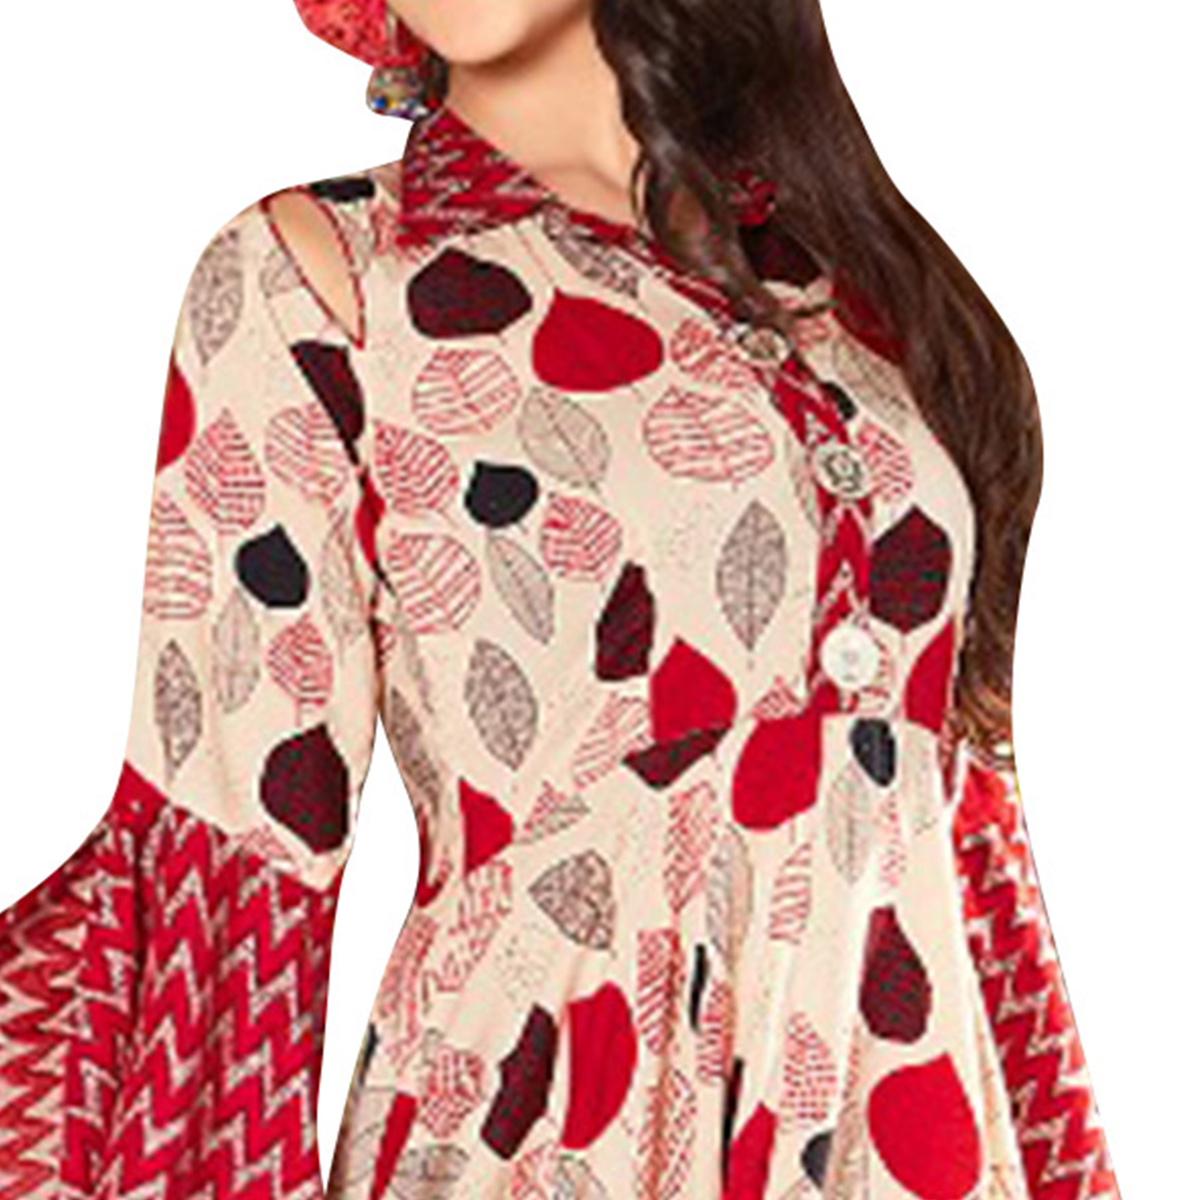 Unique Beige-Red Colored Printed Partywear Rayon Cotton Long Kurti